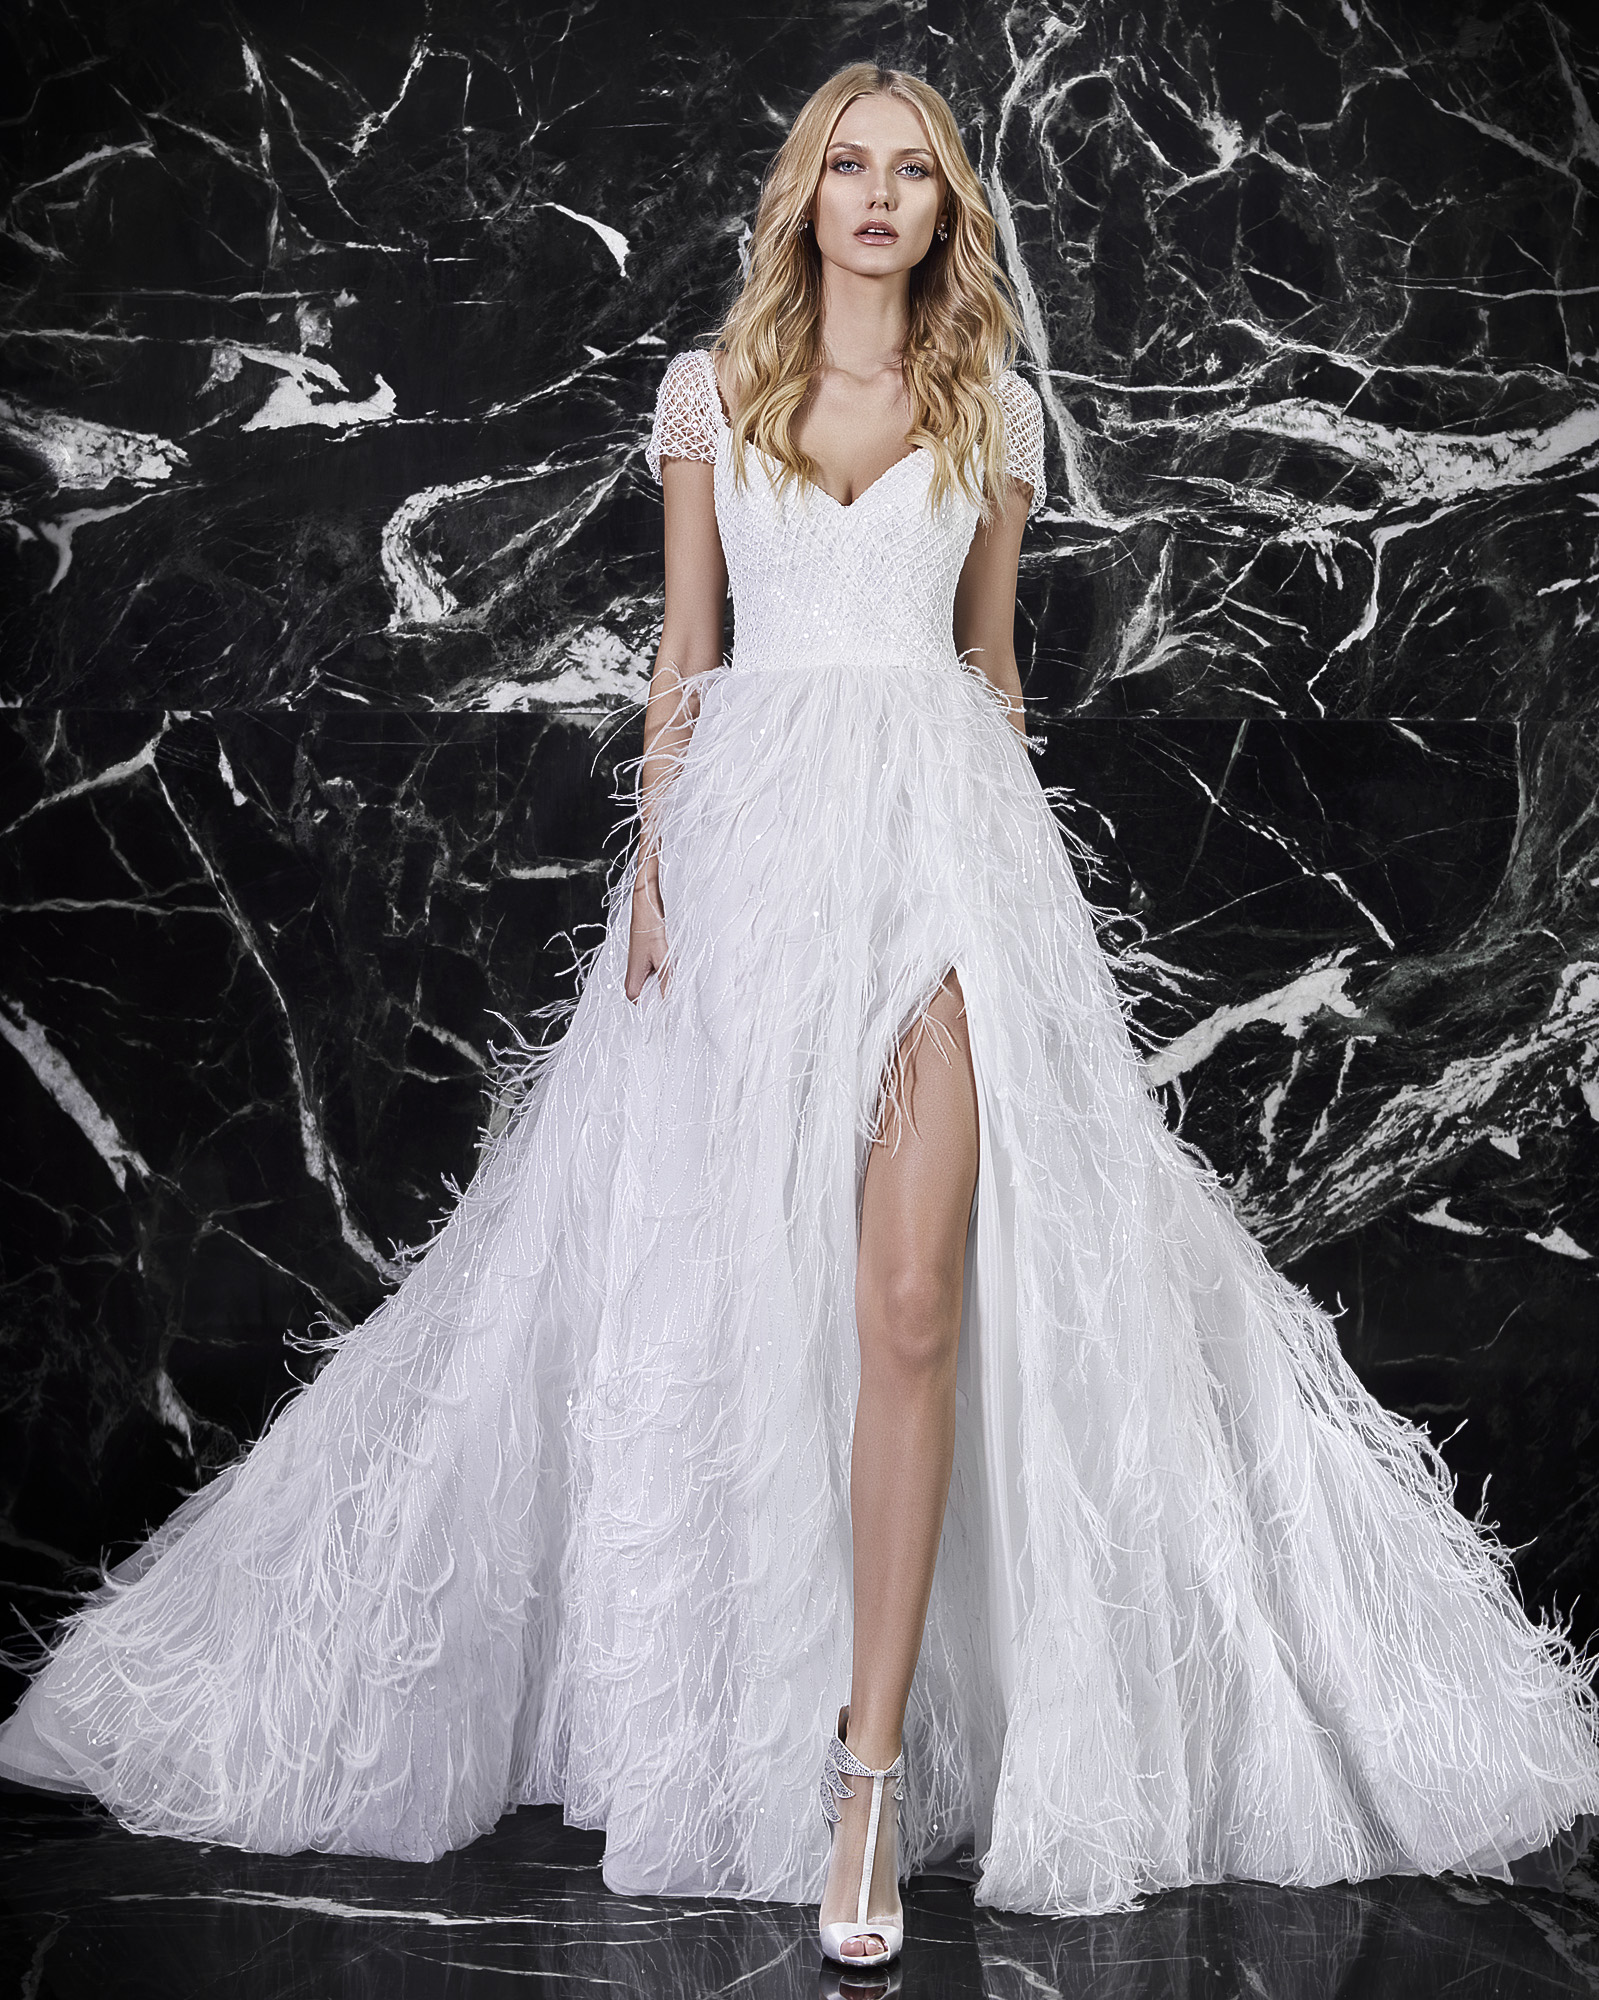 Victoria kyriakides wedding dress feathers